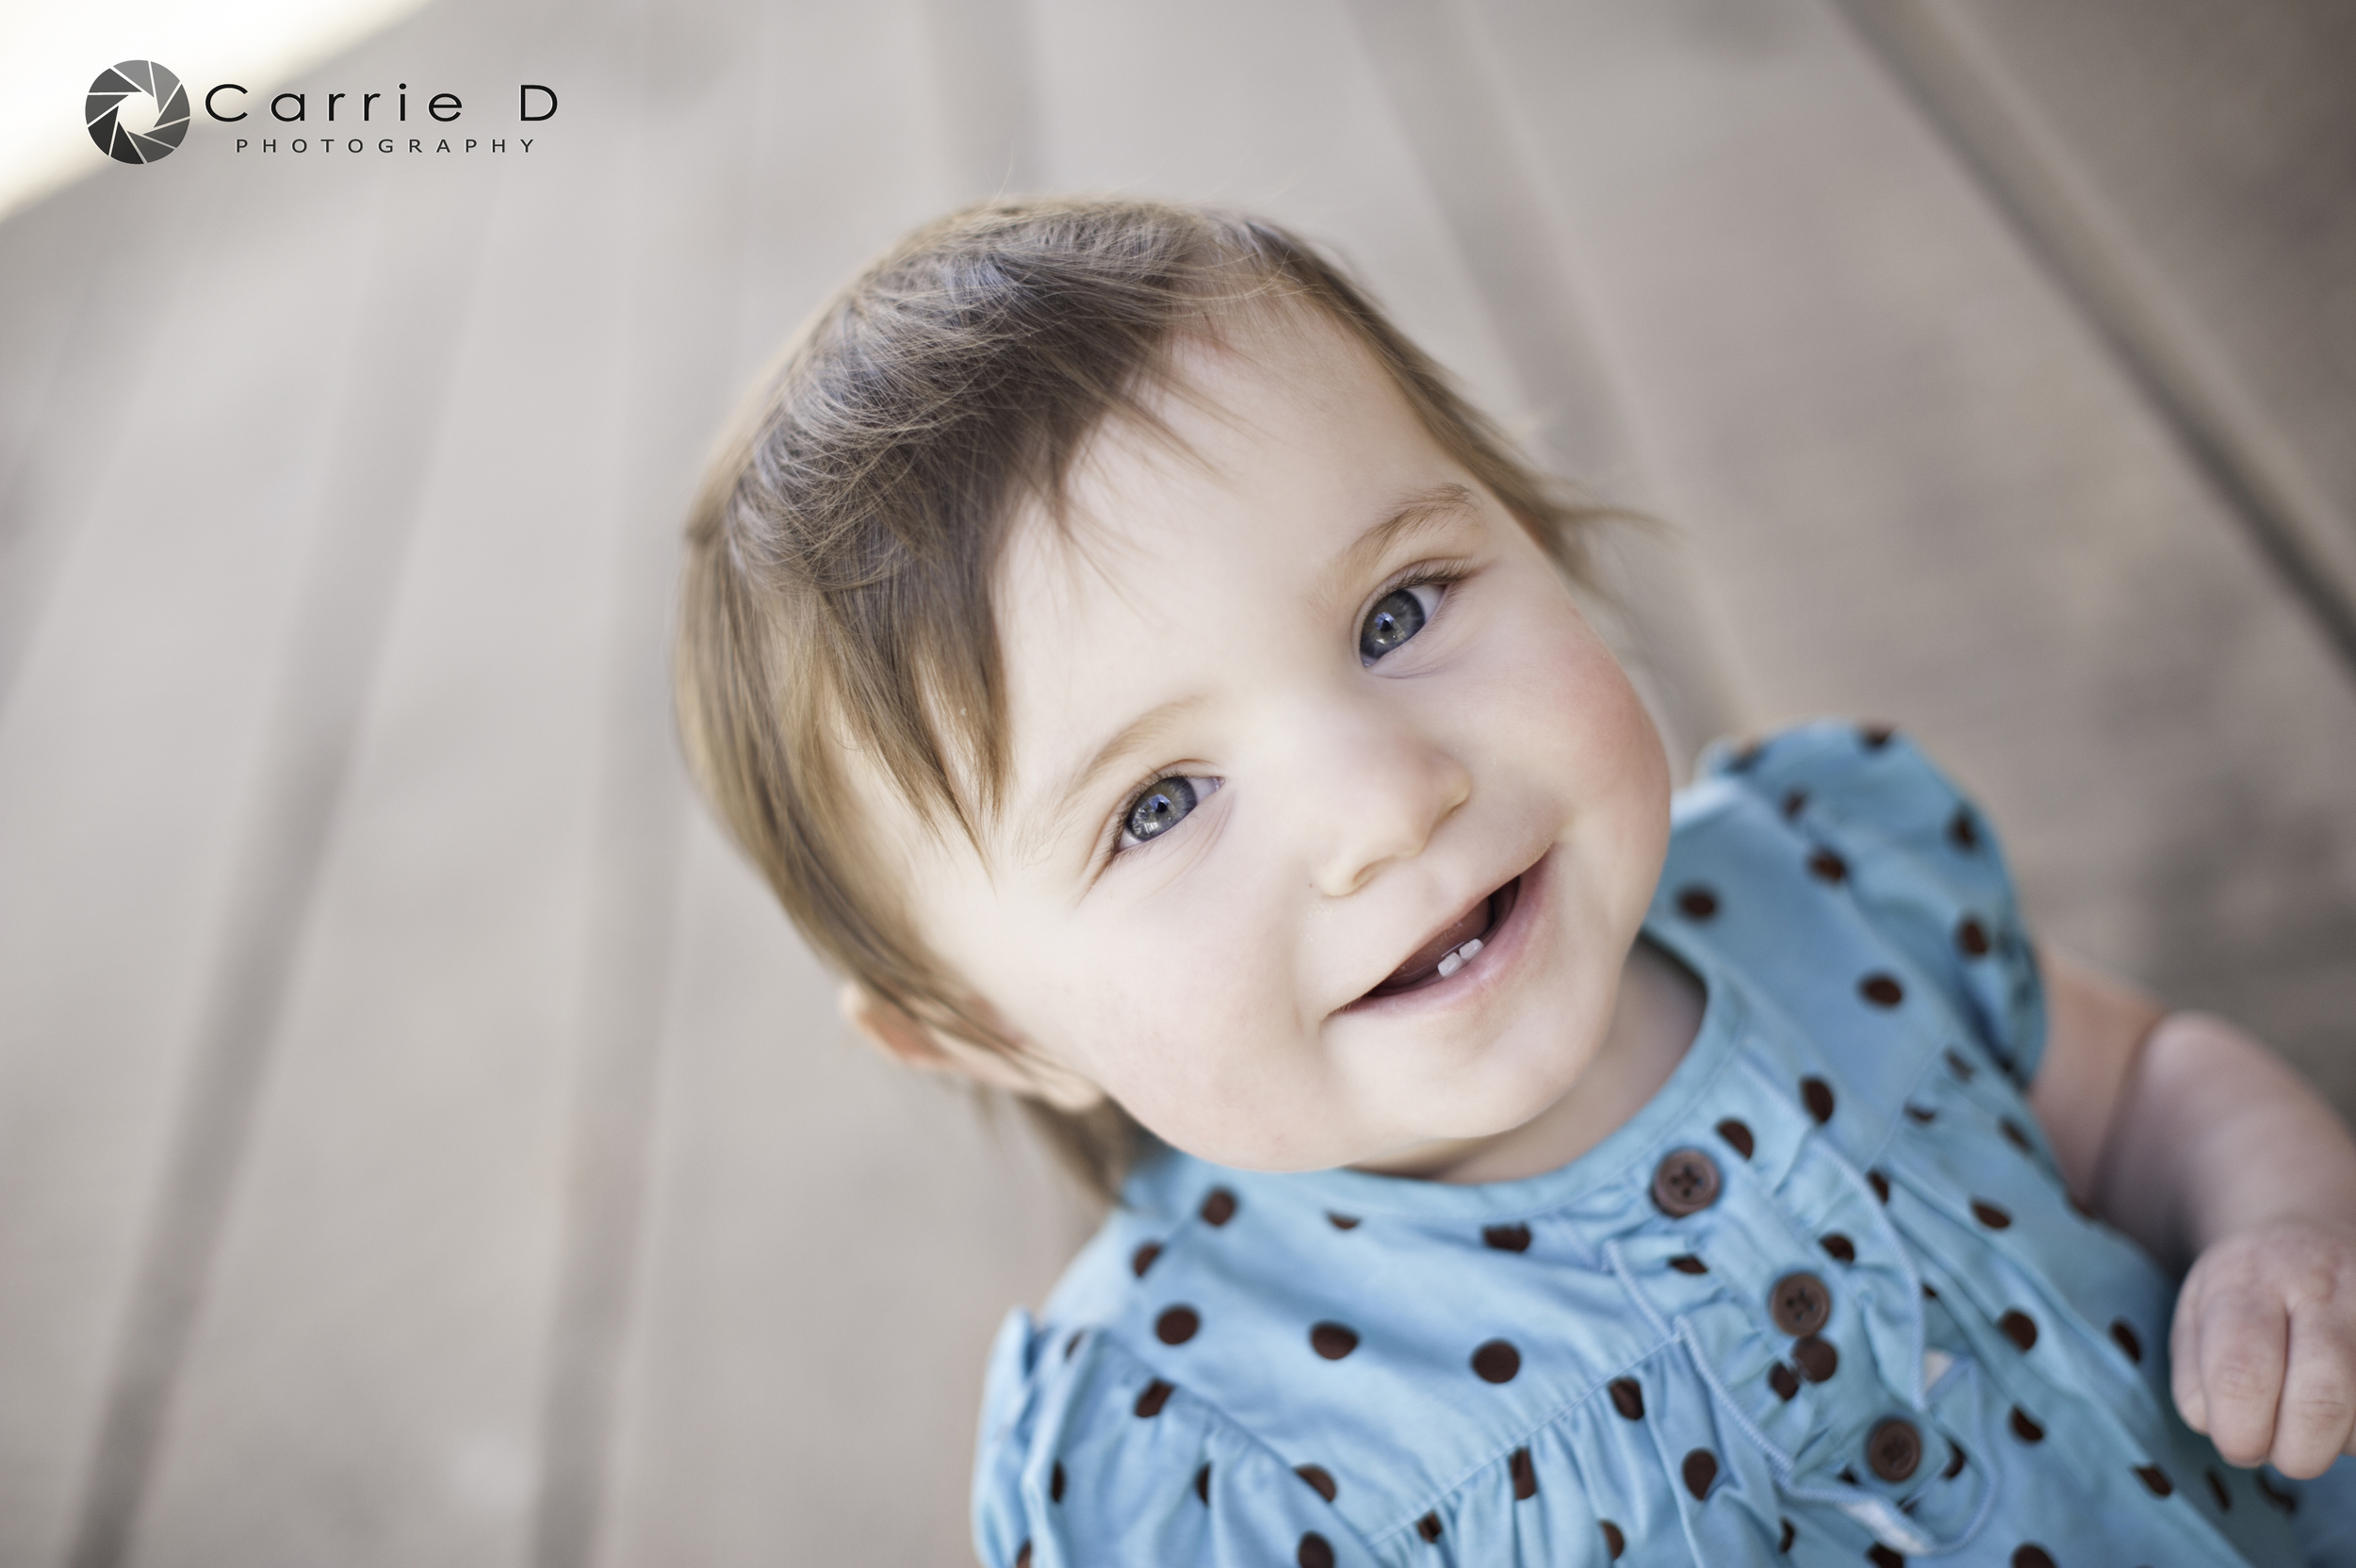 Harford County Photographer – Harford County Portrait Photographer – Harford County Birthday Photographer – Harford County Child Photographer – Harford County Cake Smash Photographer – Harford County Natural Light Photographer – Harford County Lifestyle Photographer – Harford County Natural Light Portrait Photographer - Maryland Photographer – Maryland Portrait Photographer – Maryland Birthday Photographer – Maryland Child Photographer – Maryland Cake Smash Photographer – Maryland Natural Light Photographer – Maryland Lifestyle Photographer – Maryland Natural Light Portrait Photographer - Harper_DSC_7033B